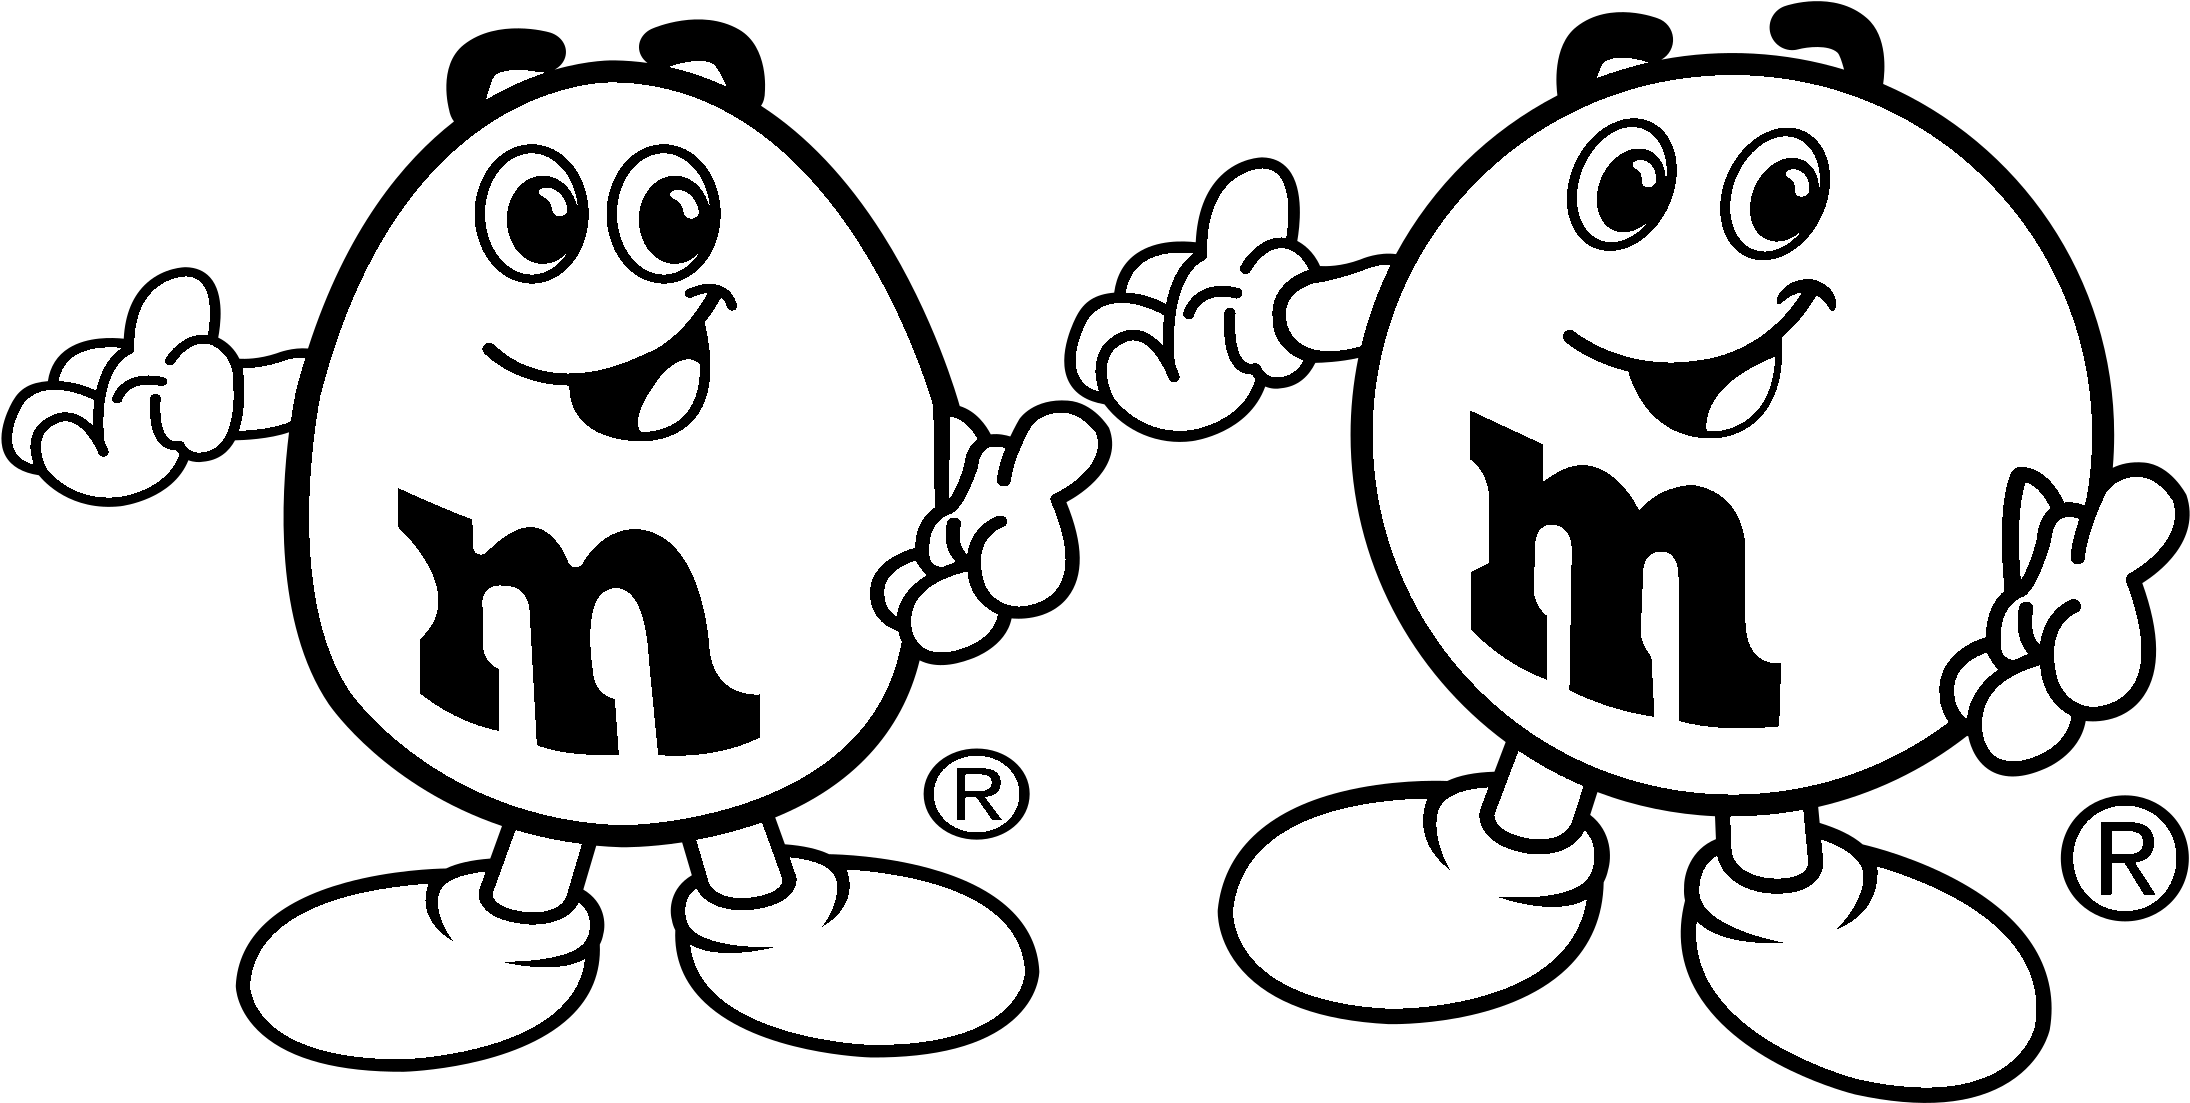 M and ms clipart black and white picture black and white stock M&m\'s Logo Black And White - M&m Black And White Clipart ... picture black and white stock